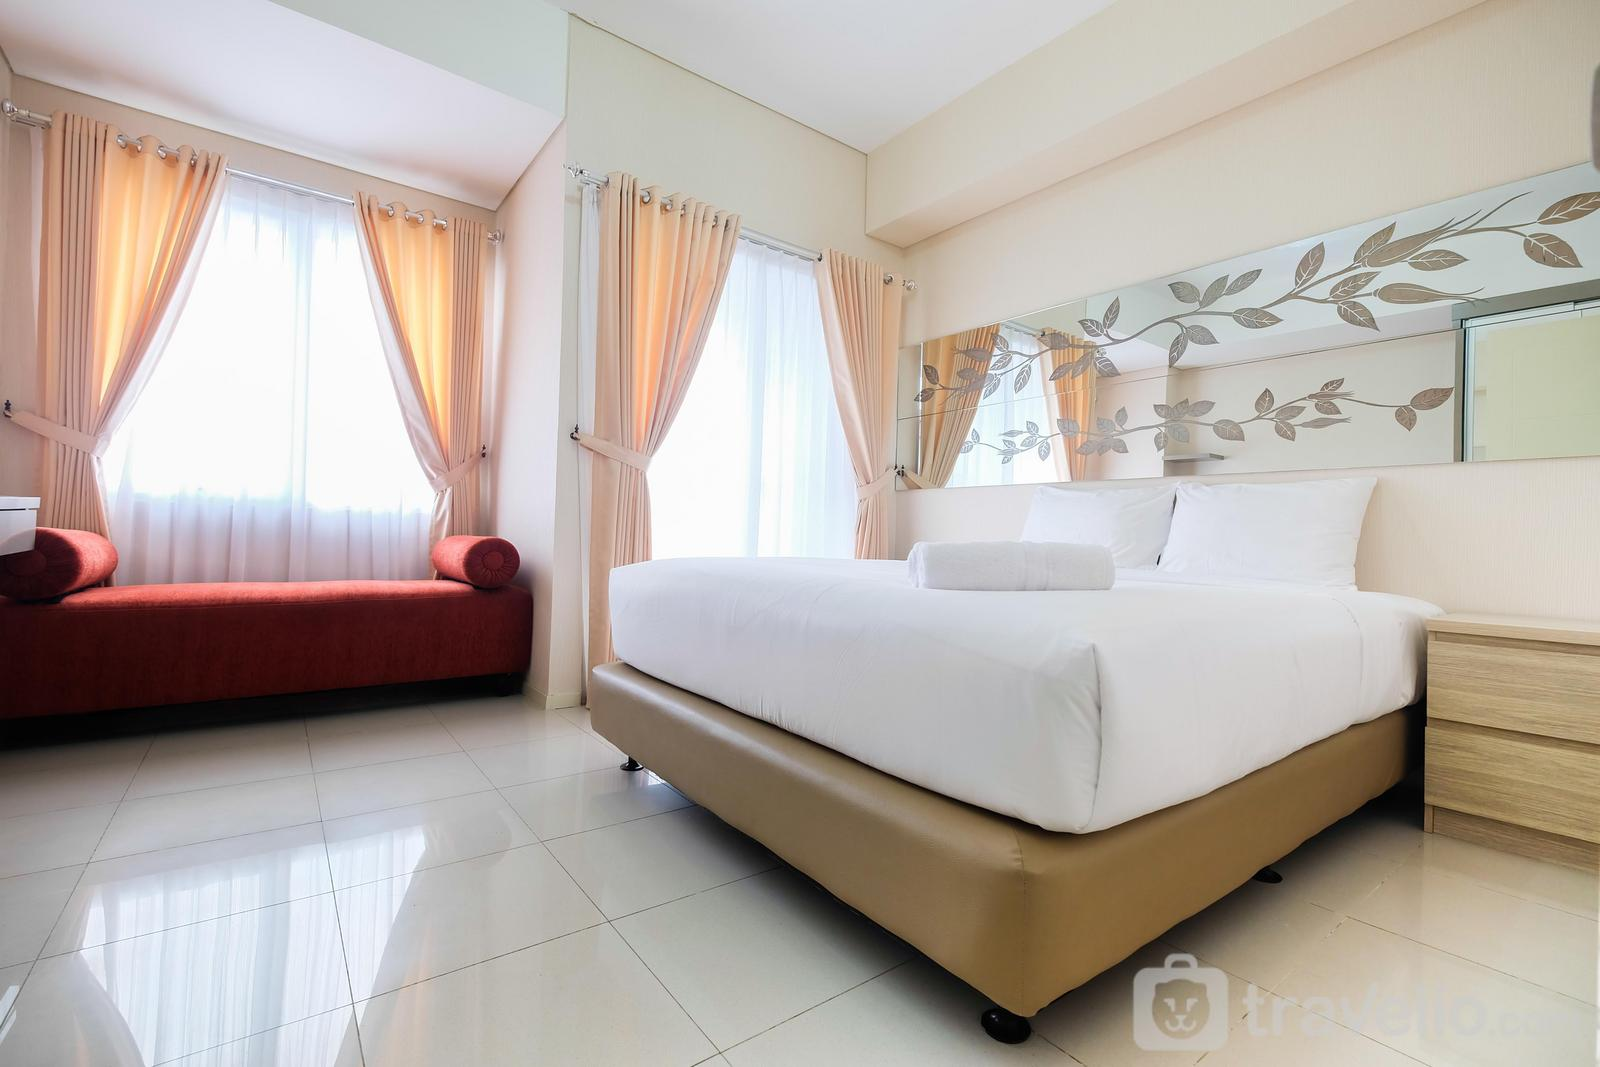 Cosmo Terrace Thamrin - Comfy 1BR Apartment at Cosmo Terrace By Travelio